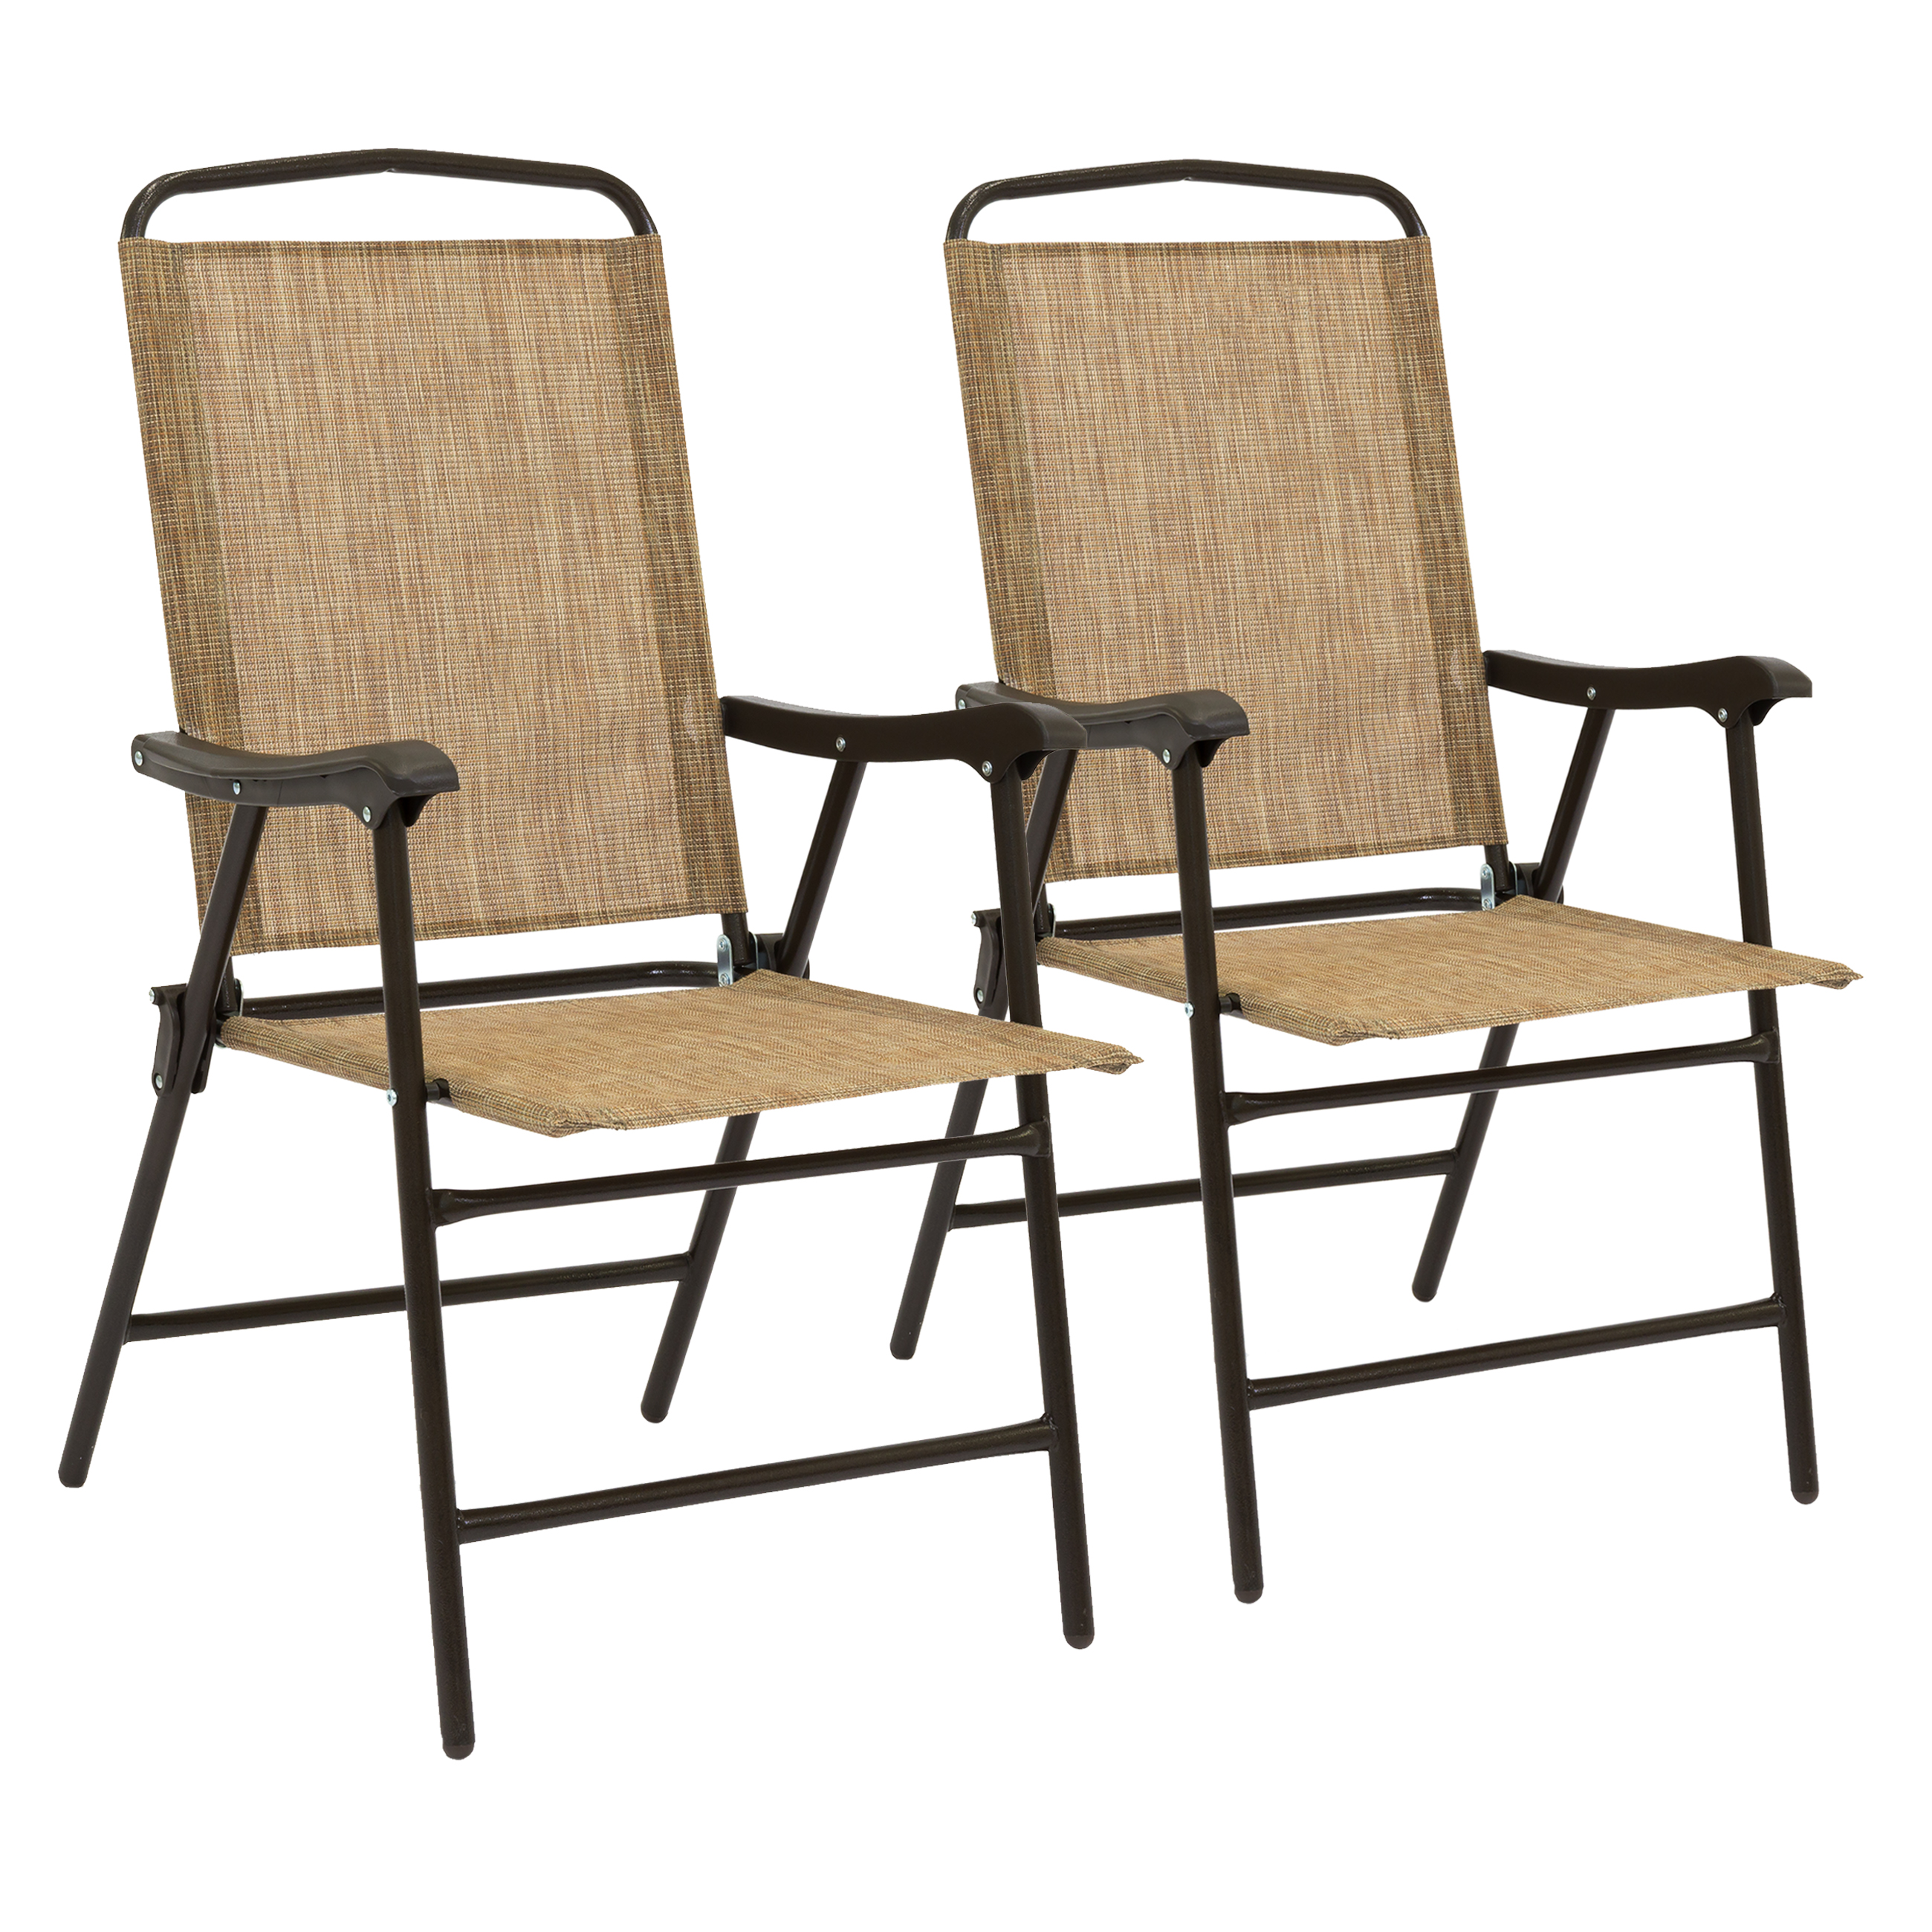 Best Choice Products Set of 2 Outdoor Folding Sling Back Chairs for Patio, Deck, Beach, Camping w/ Weather-Resistant Fabric, Metal Frame - Brown